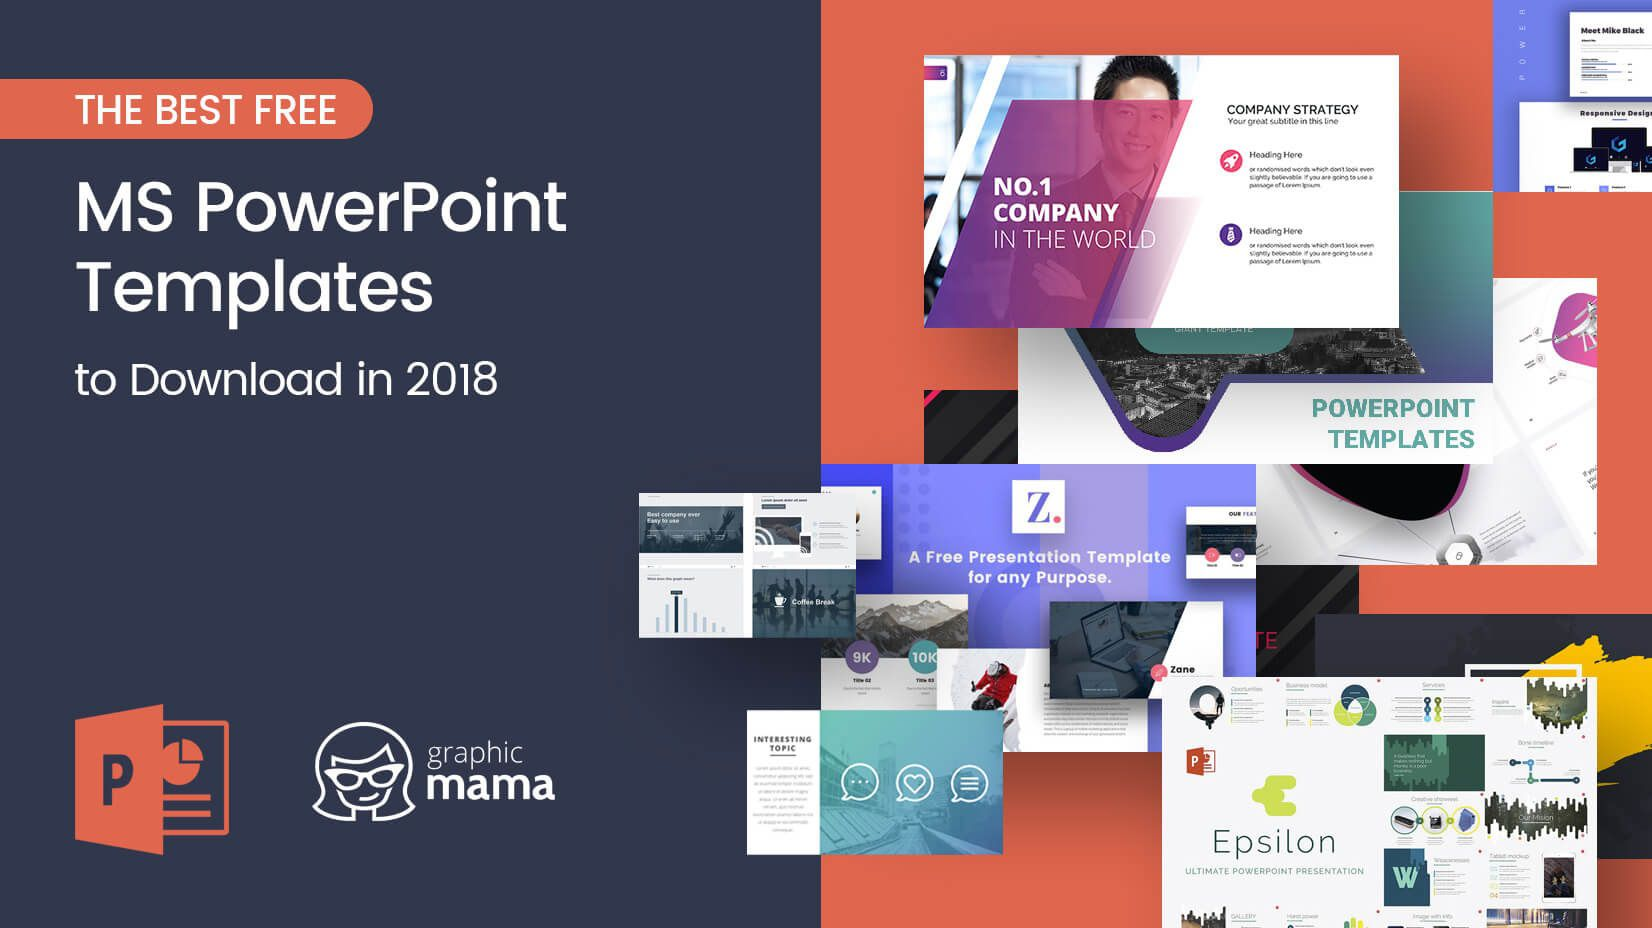 009 Unbelievable Powerpoint Presentation Format Free Download Image  Influencer Template Company Ppt SampleFull